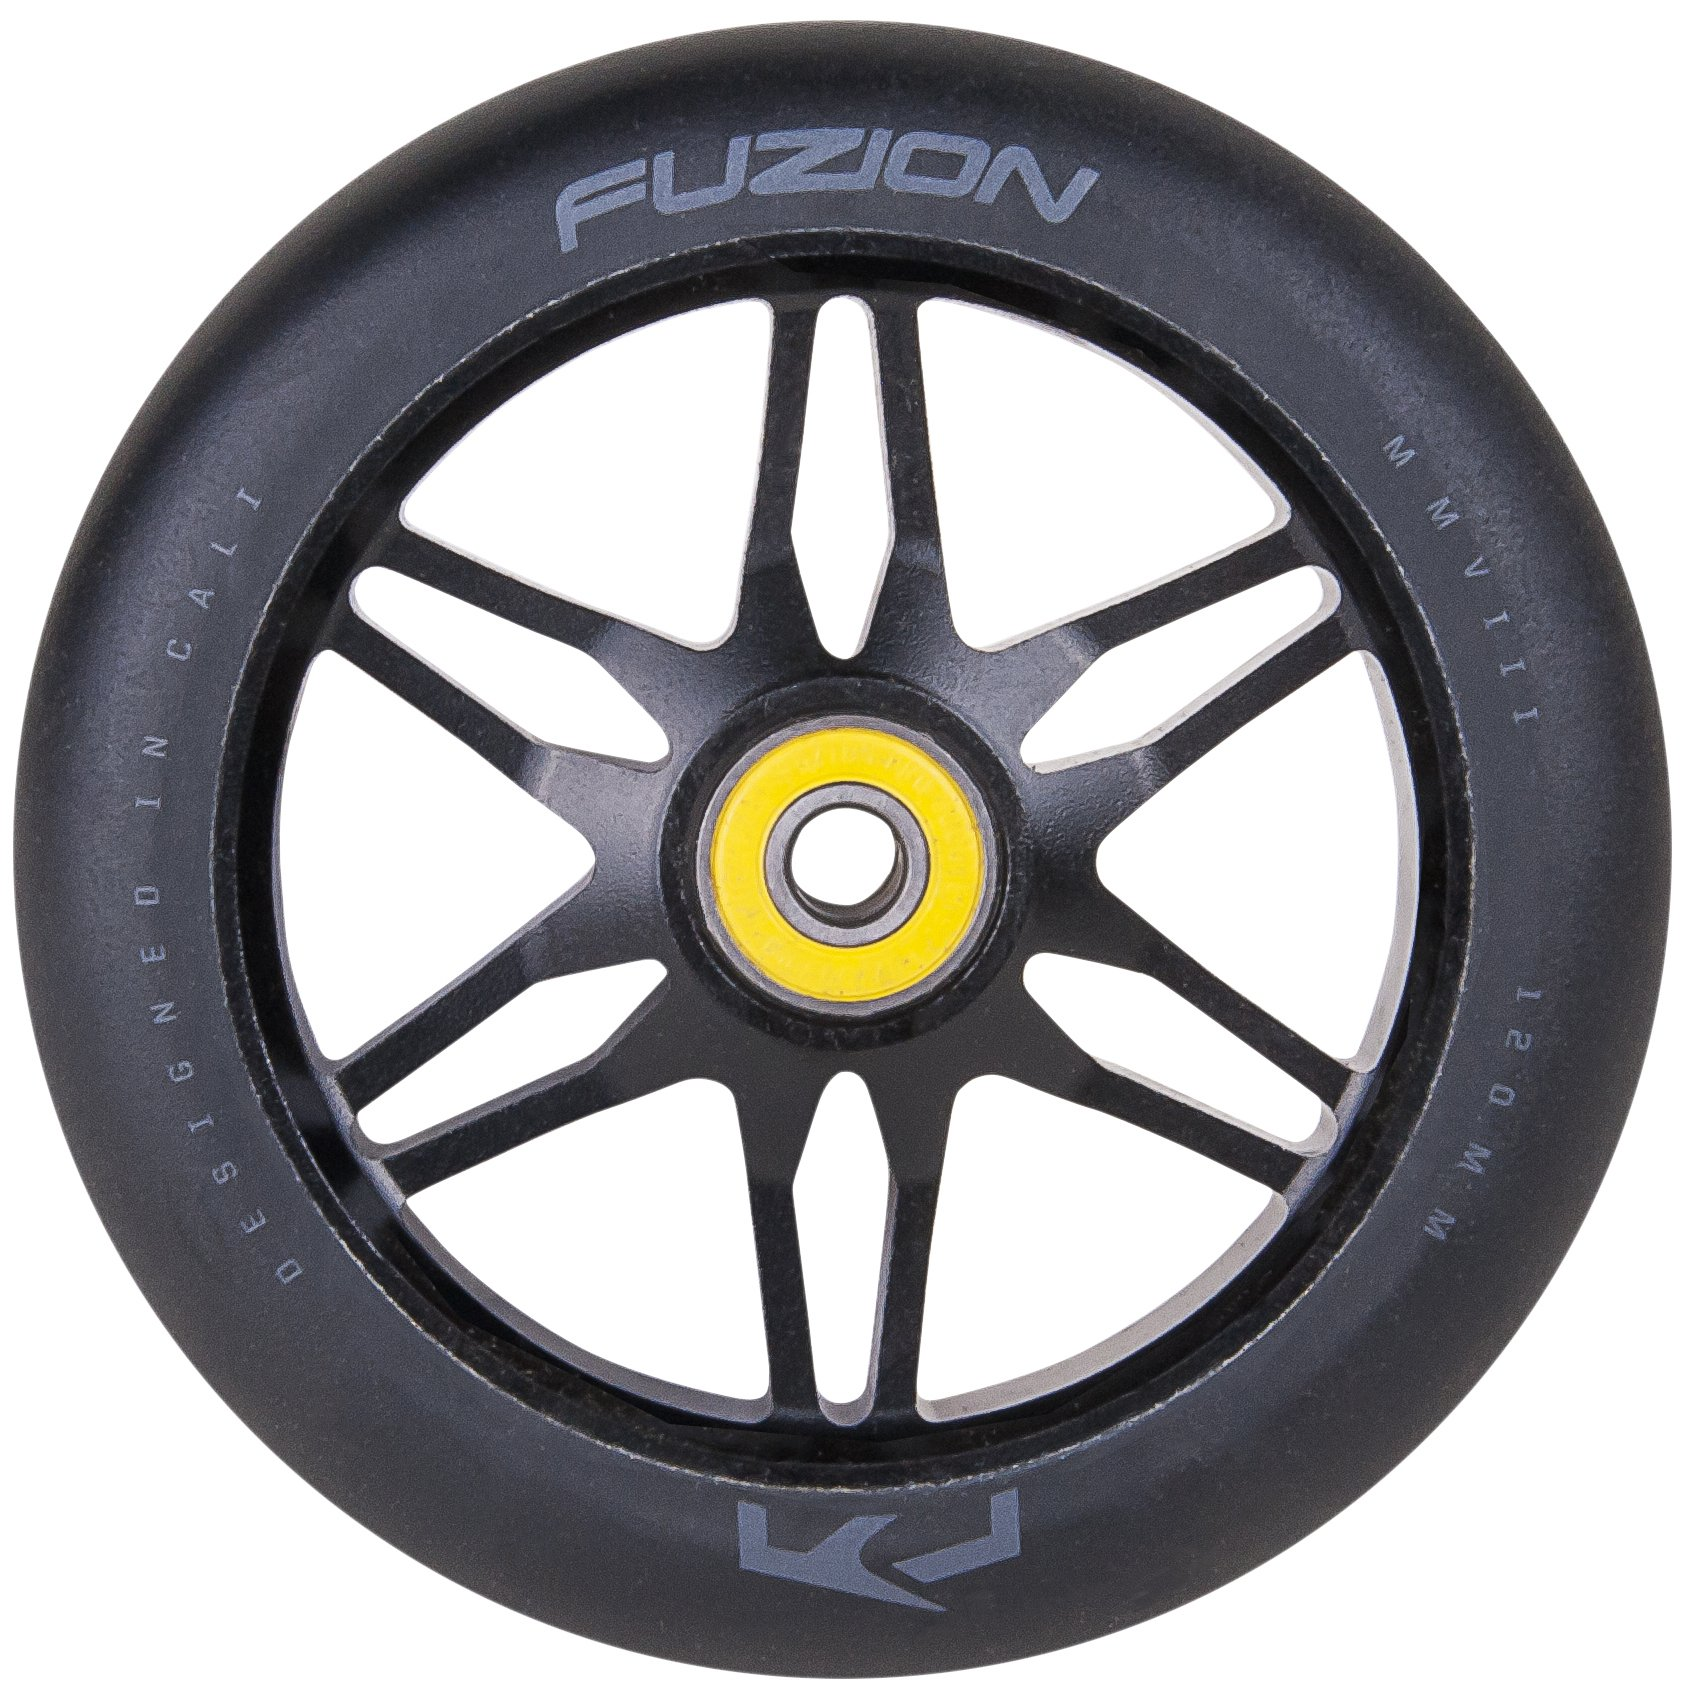 Fuzion Pro Scooters Ace Wheel 120mm (Smoke with Black)